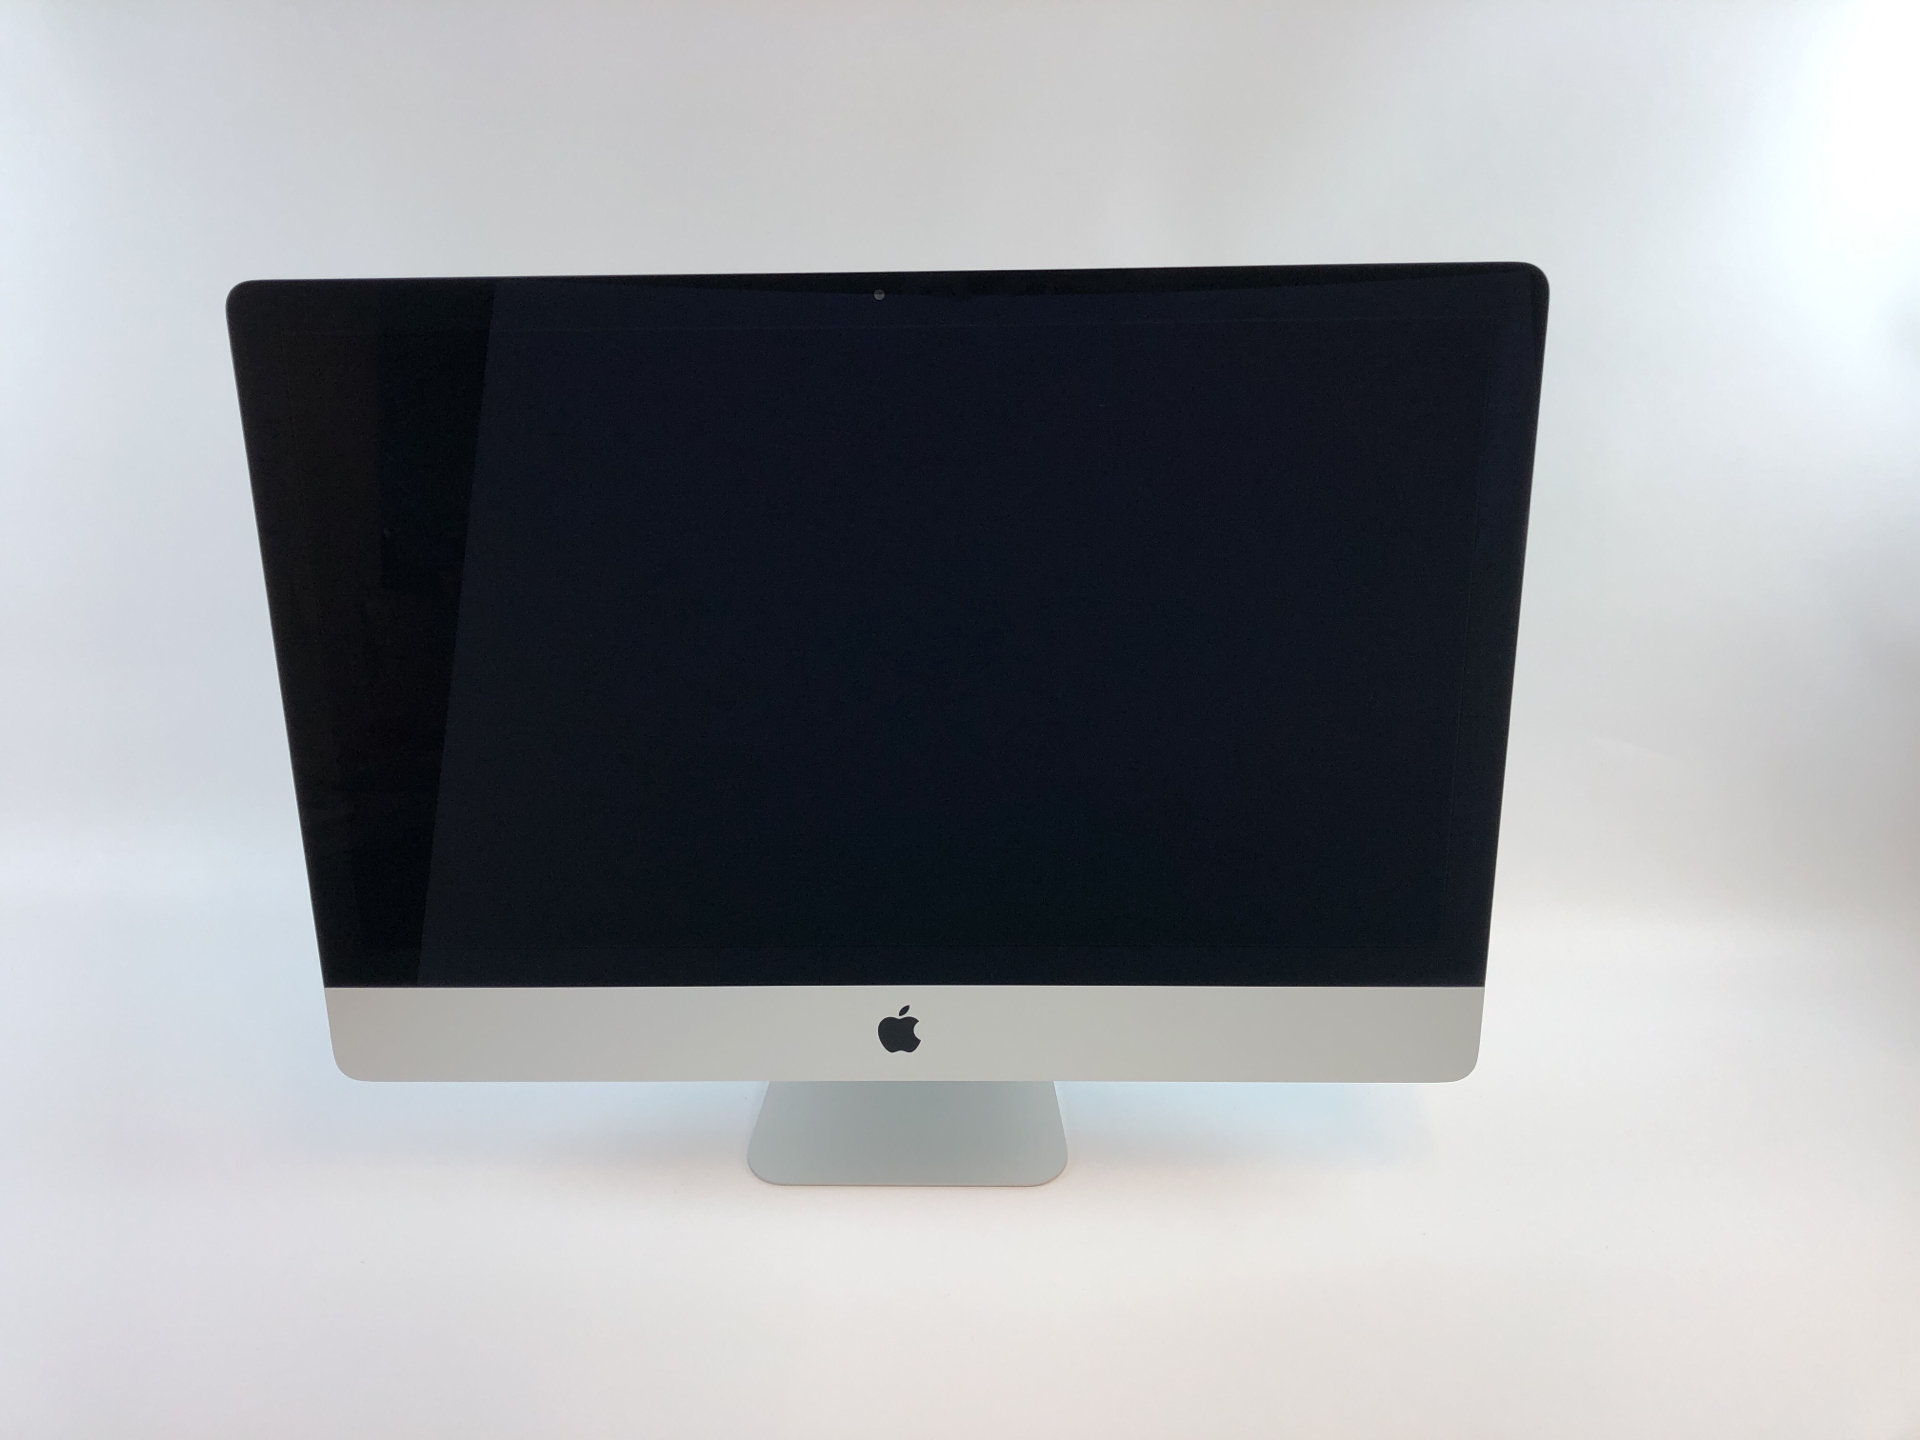 "iMac 27"" Late 2013 (Intel Quad-Core i7 3.5 GHz 32 GB RAM 1 TB Fusion Drive), Intel Quad-Core i7 3.5 GHz, 32 GB RAM, 1 TB Fusion Drive, Kuva 1"